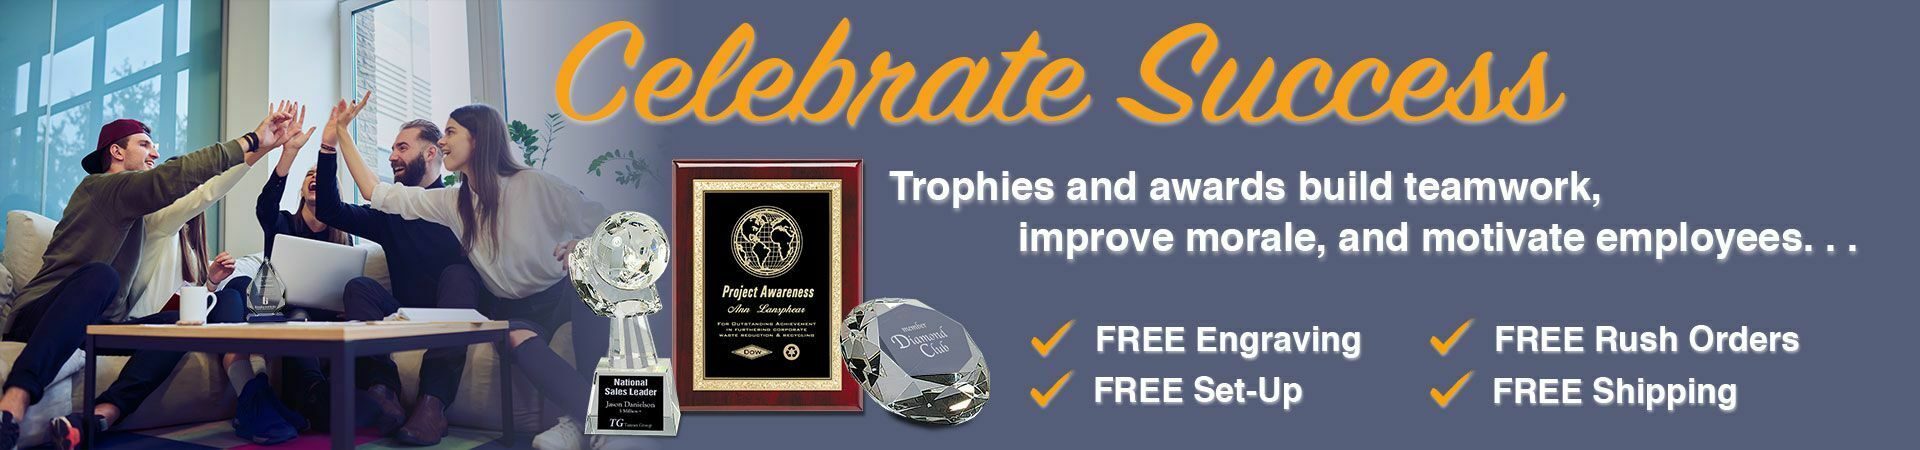 Celebrate Success slider showing corporate crystal awards and an award plaque with office team celebrating